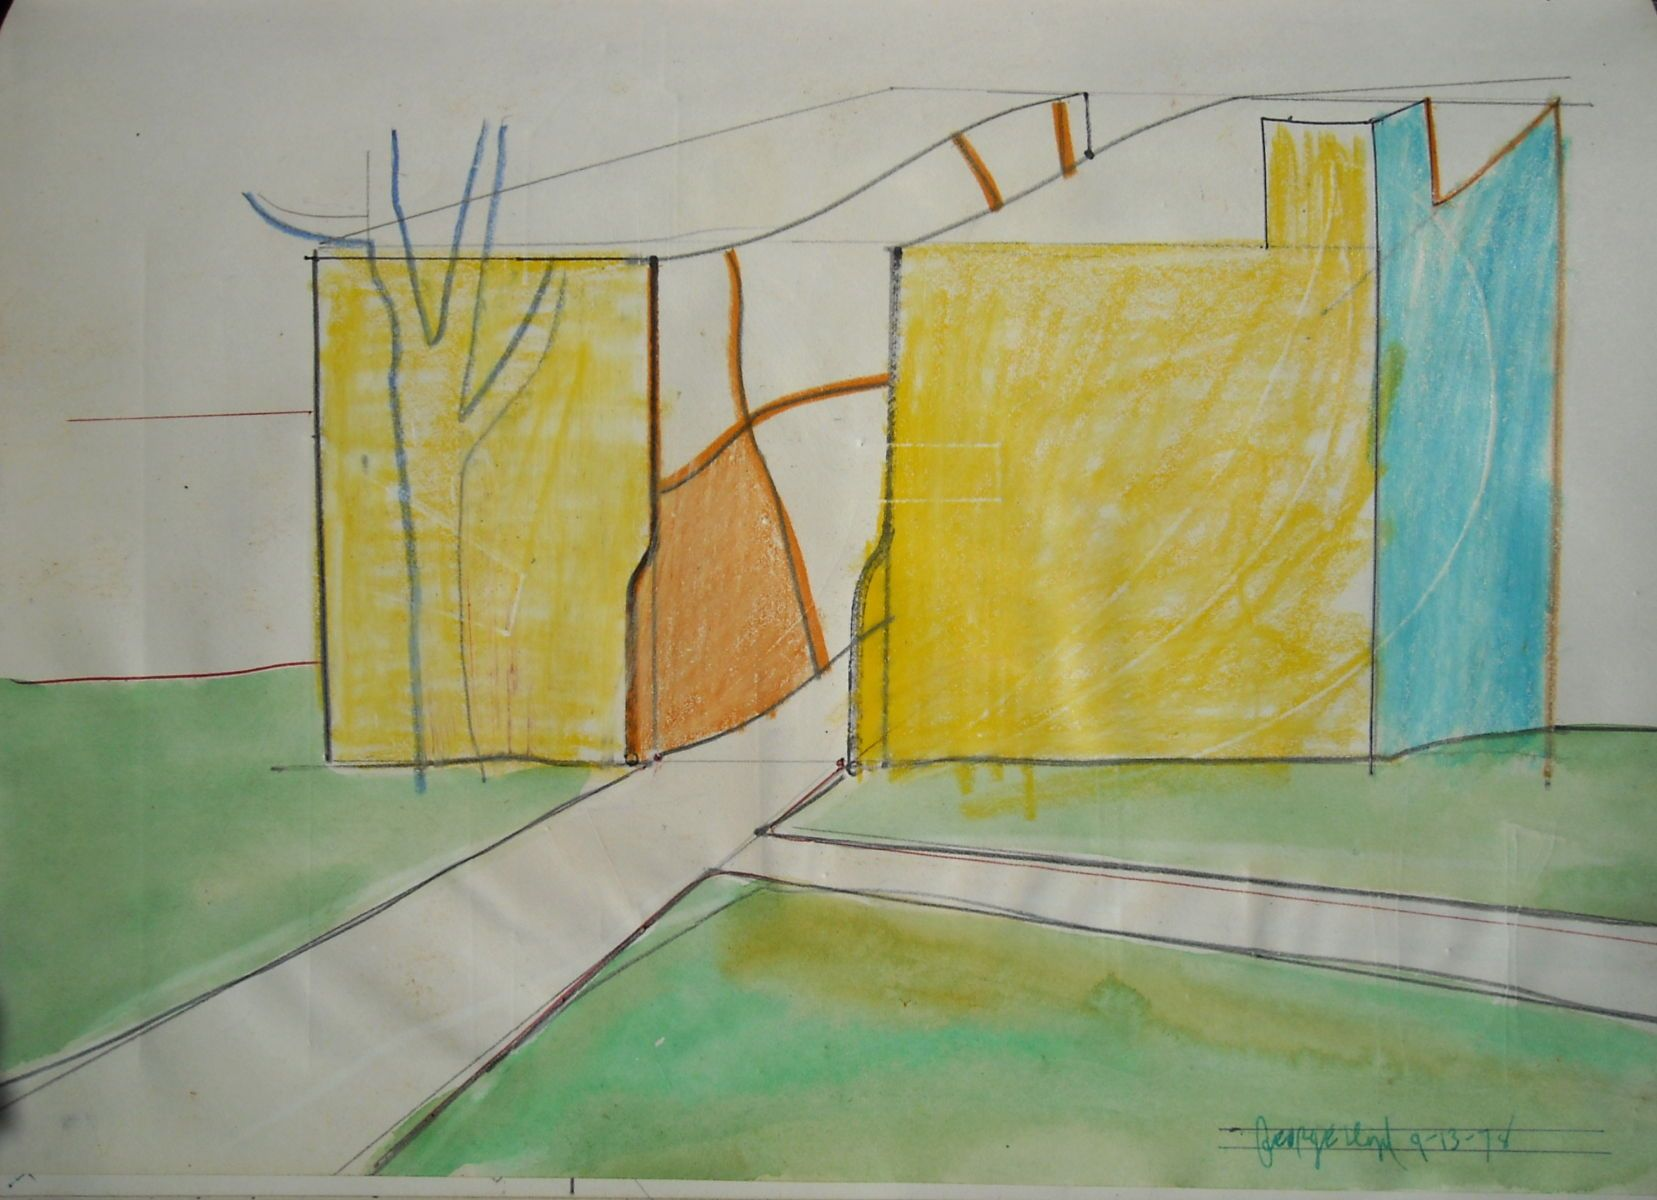 Campus BUILDING w a PATH through IT   1978 Berkeley warecolor , crayon and other media on paper